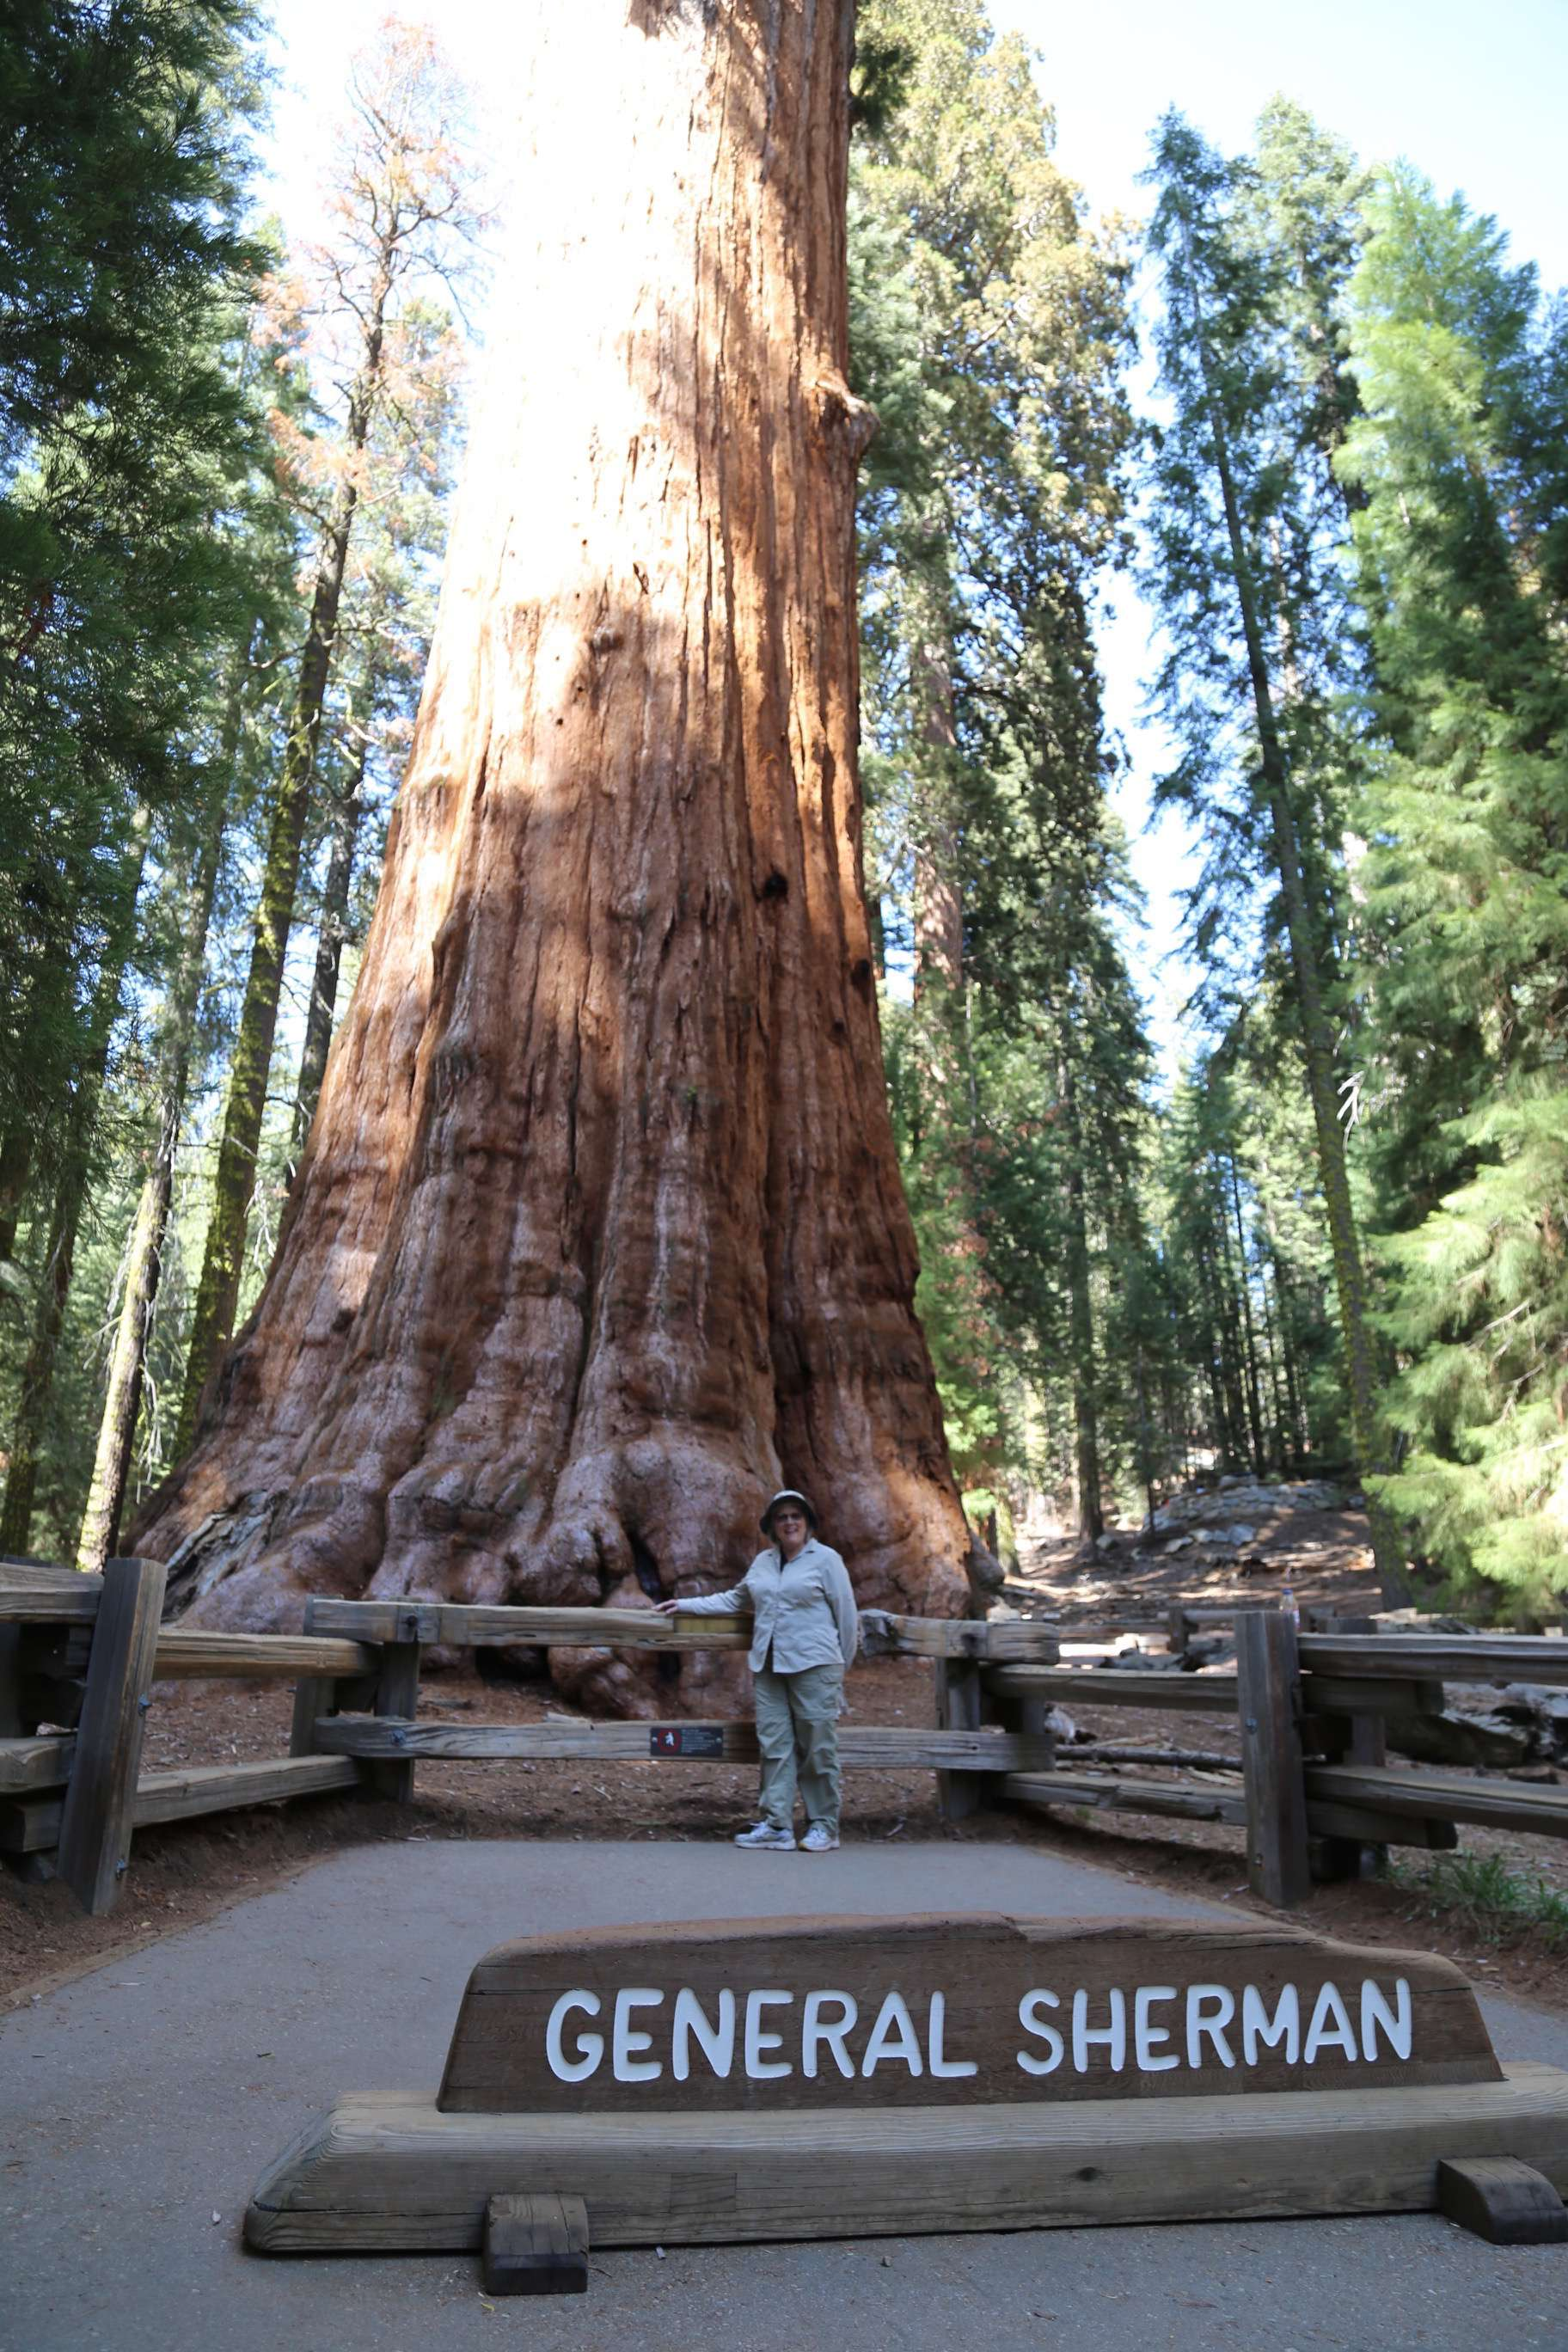 General Sherman, in Sequoia National Park, the largest single tree in the world by trunk volume.